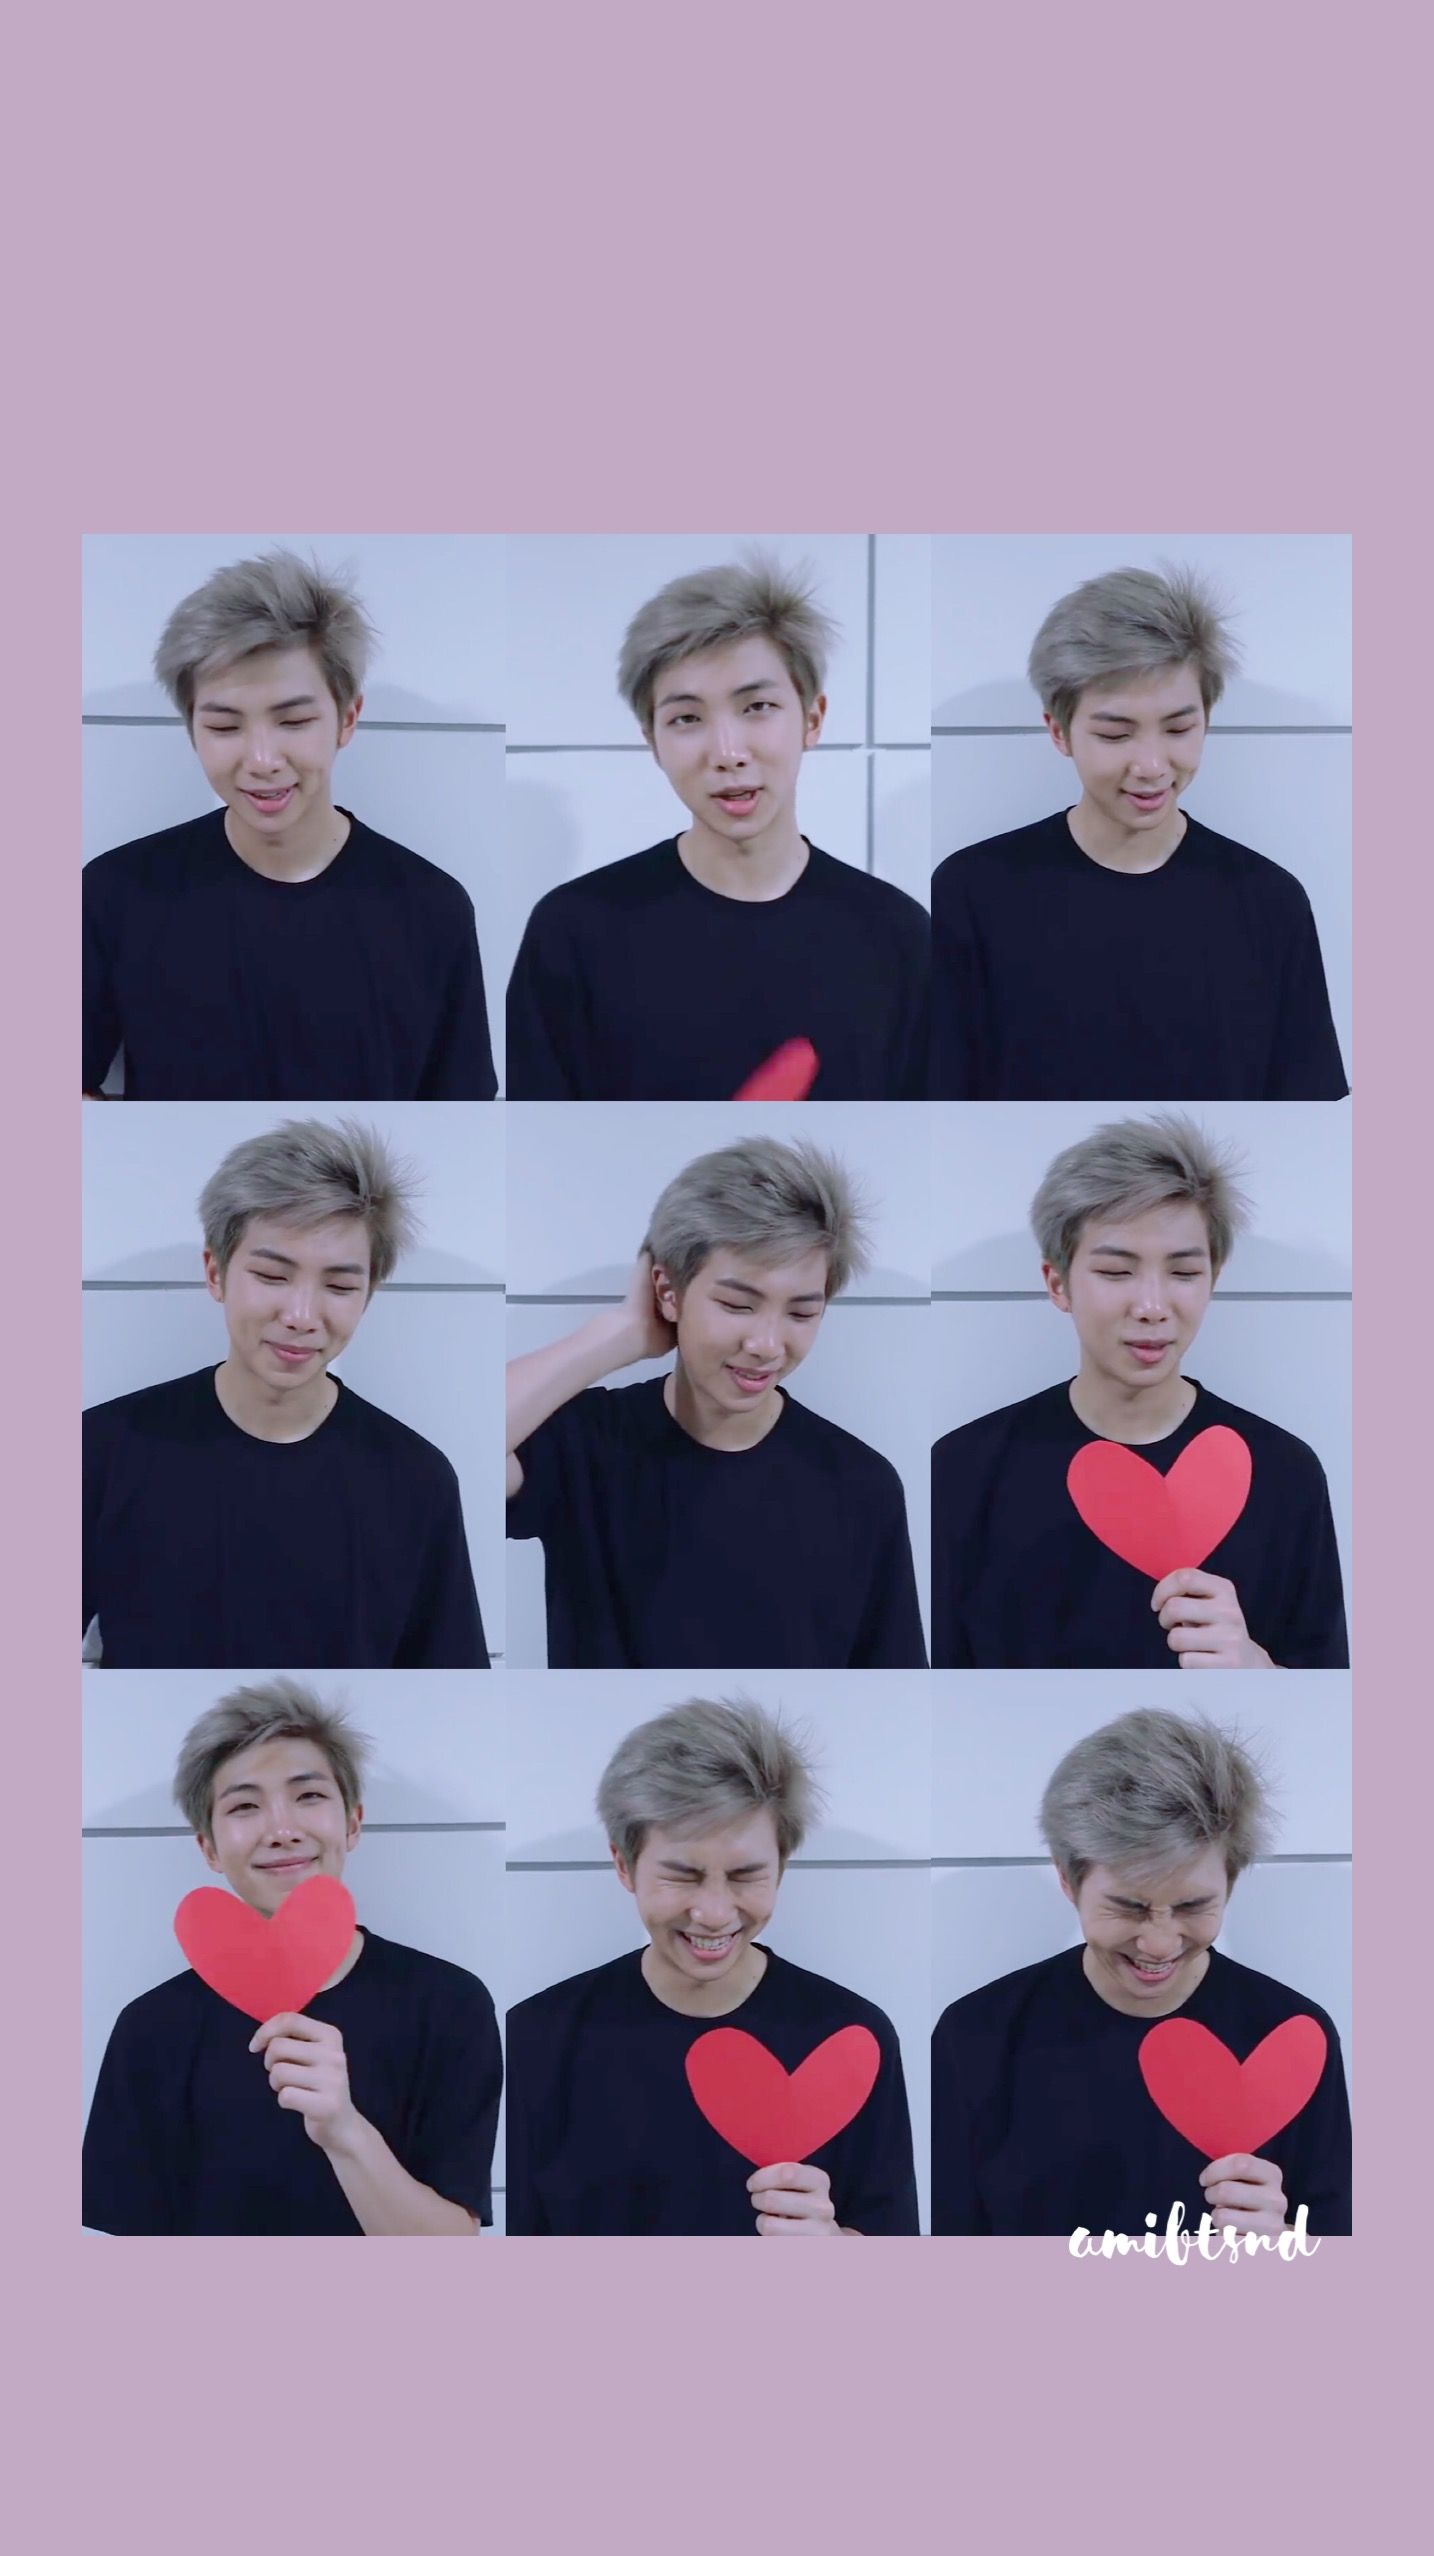 Bts Wallpaper Kimnamjoon Rap Monster Wallpaper My Phone